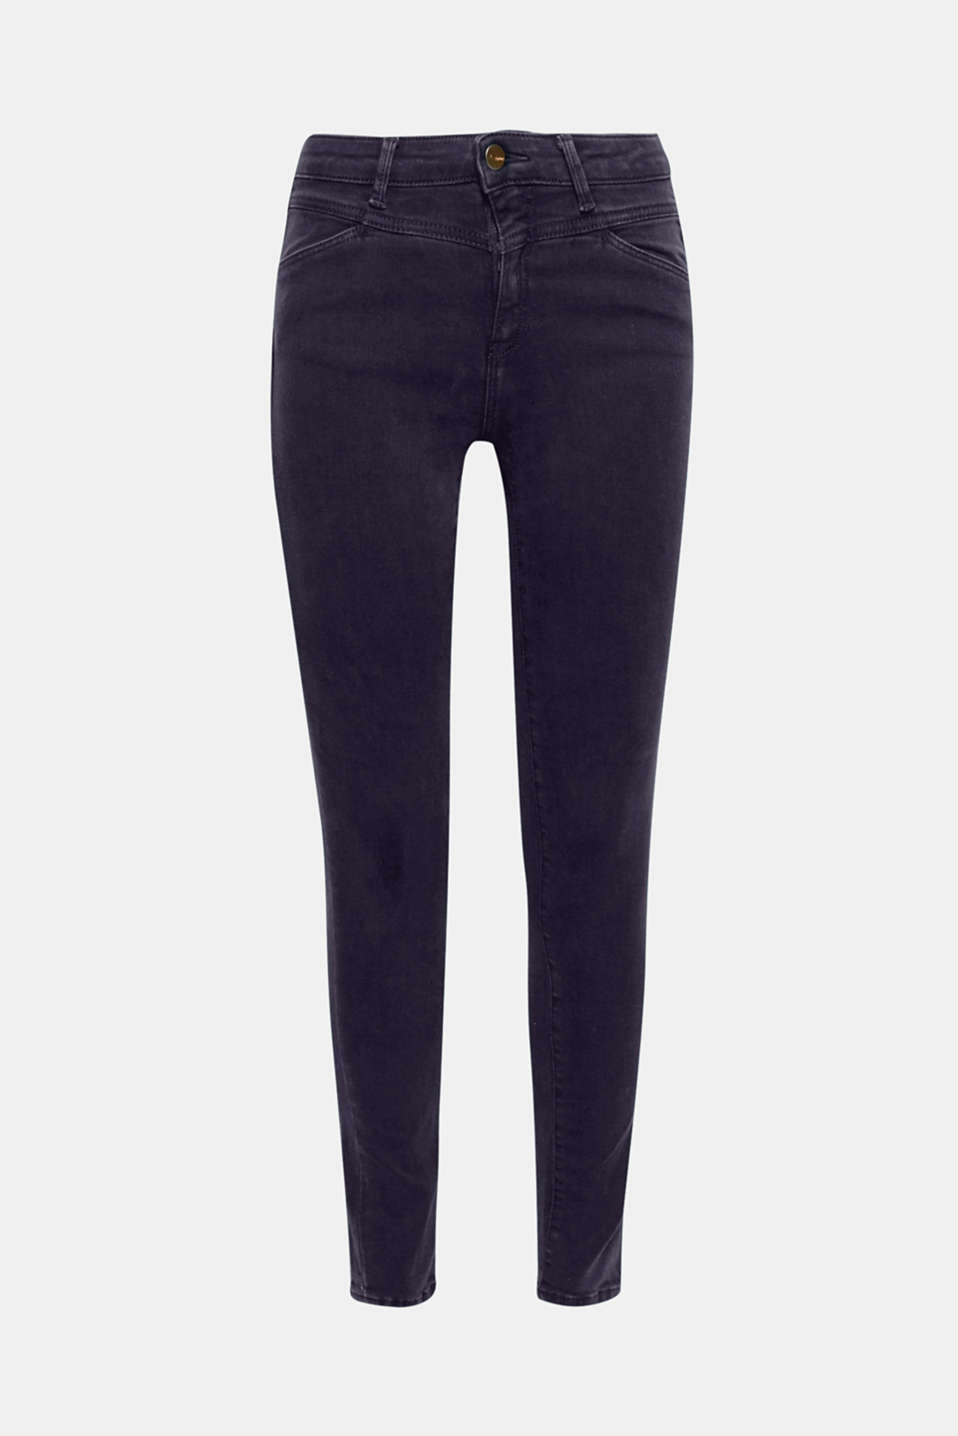 These shaping jeans with a figure-shaping effect additionally wows with its trendy colouring!